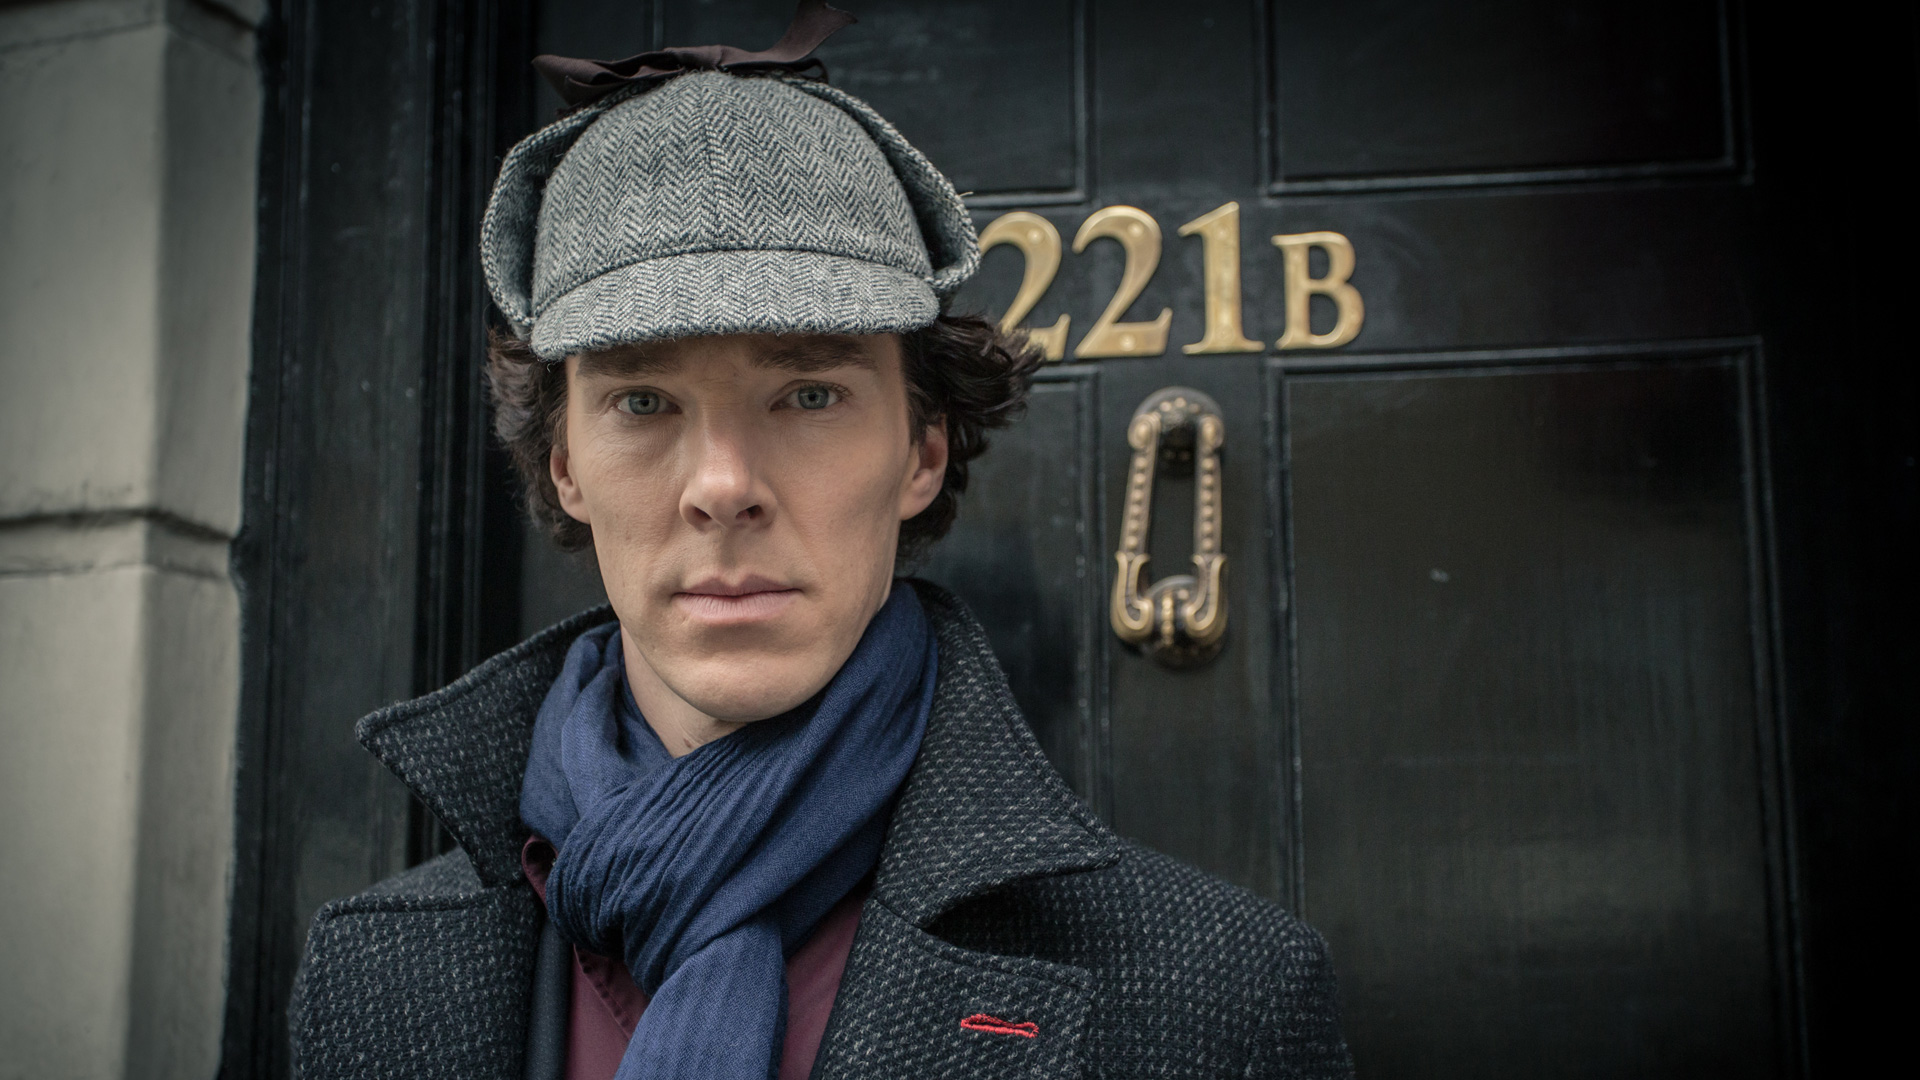 Looks like we'll have to wait even longer for Benedict Cumberbatch's 'Sherlock' return